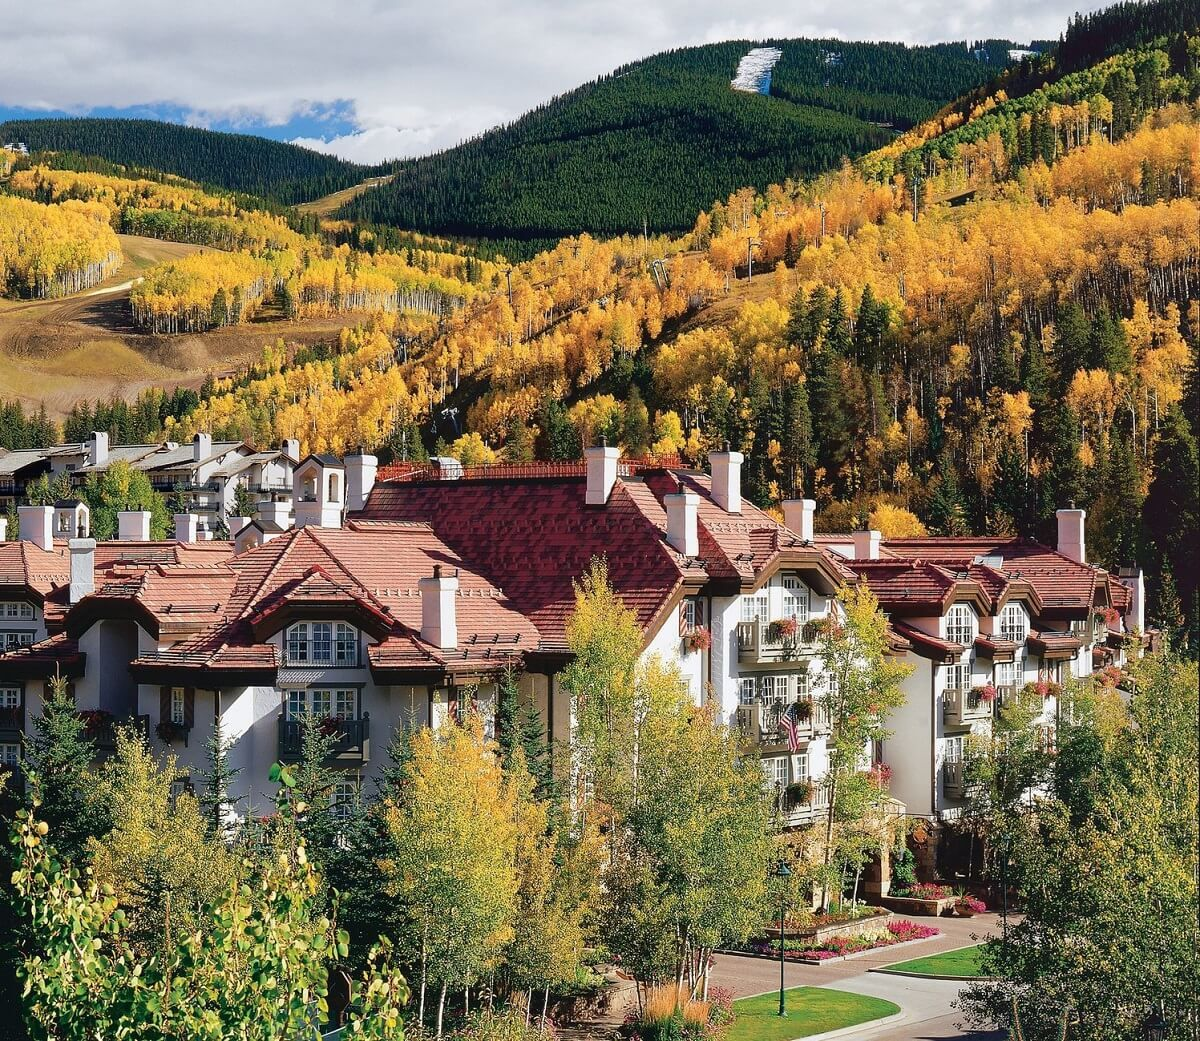 Cozy hotels vail hotels mountain resort lodge at vail